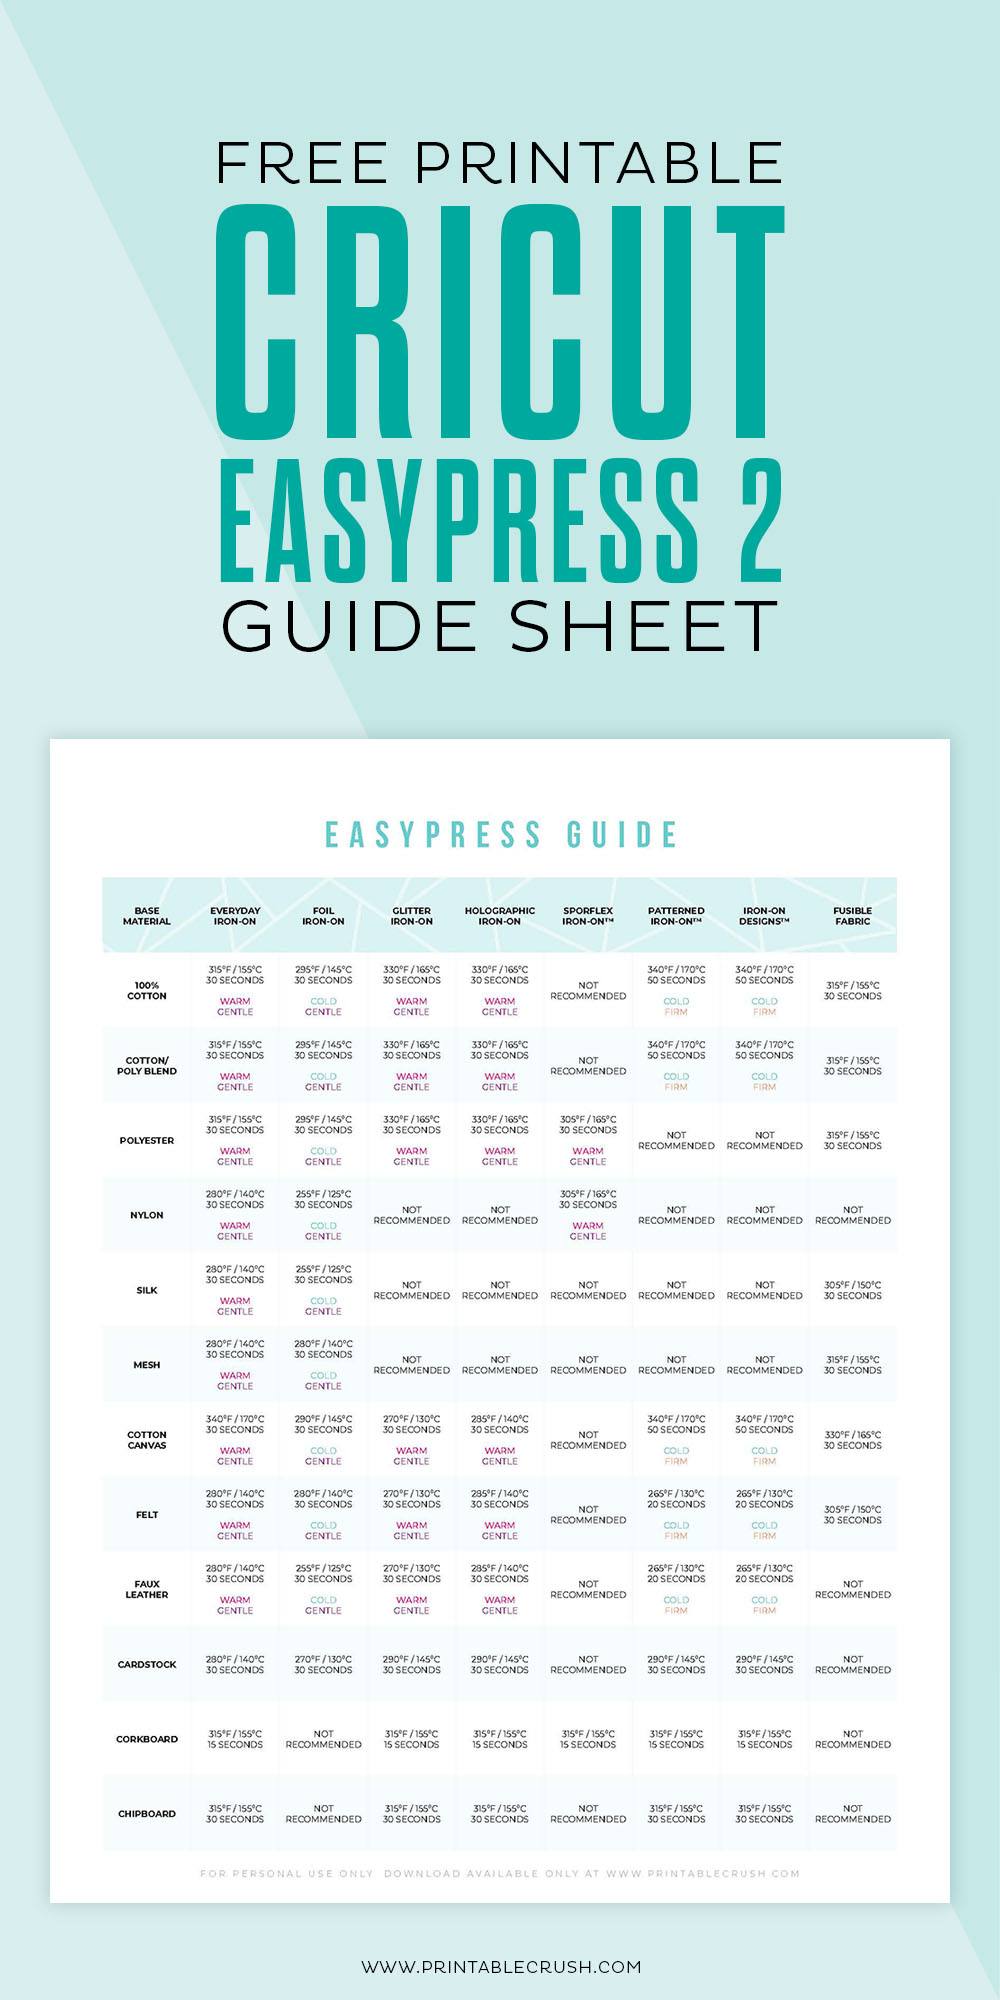 FREE EasyPress 2 Guide Sheet PDF - download instantly